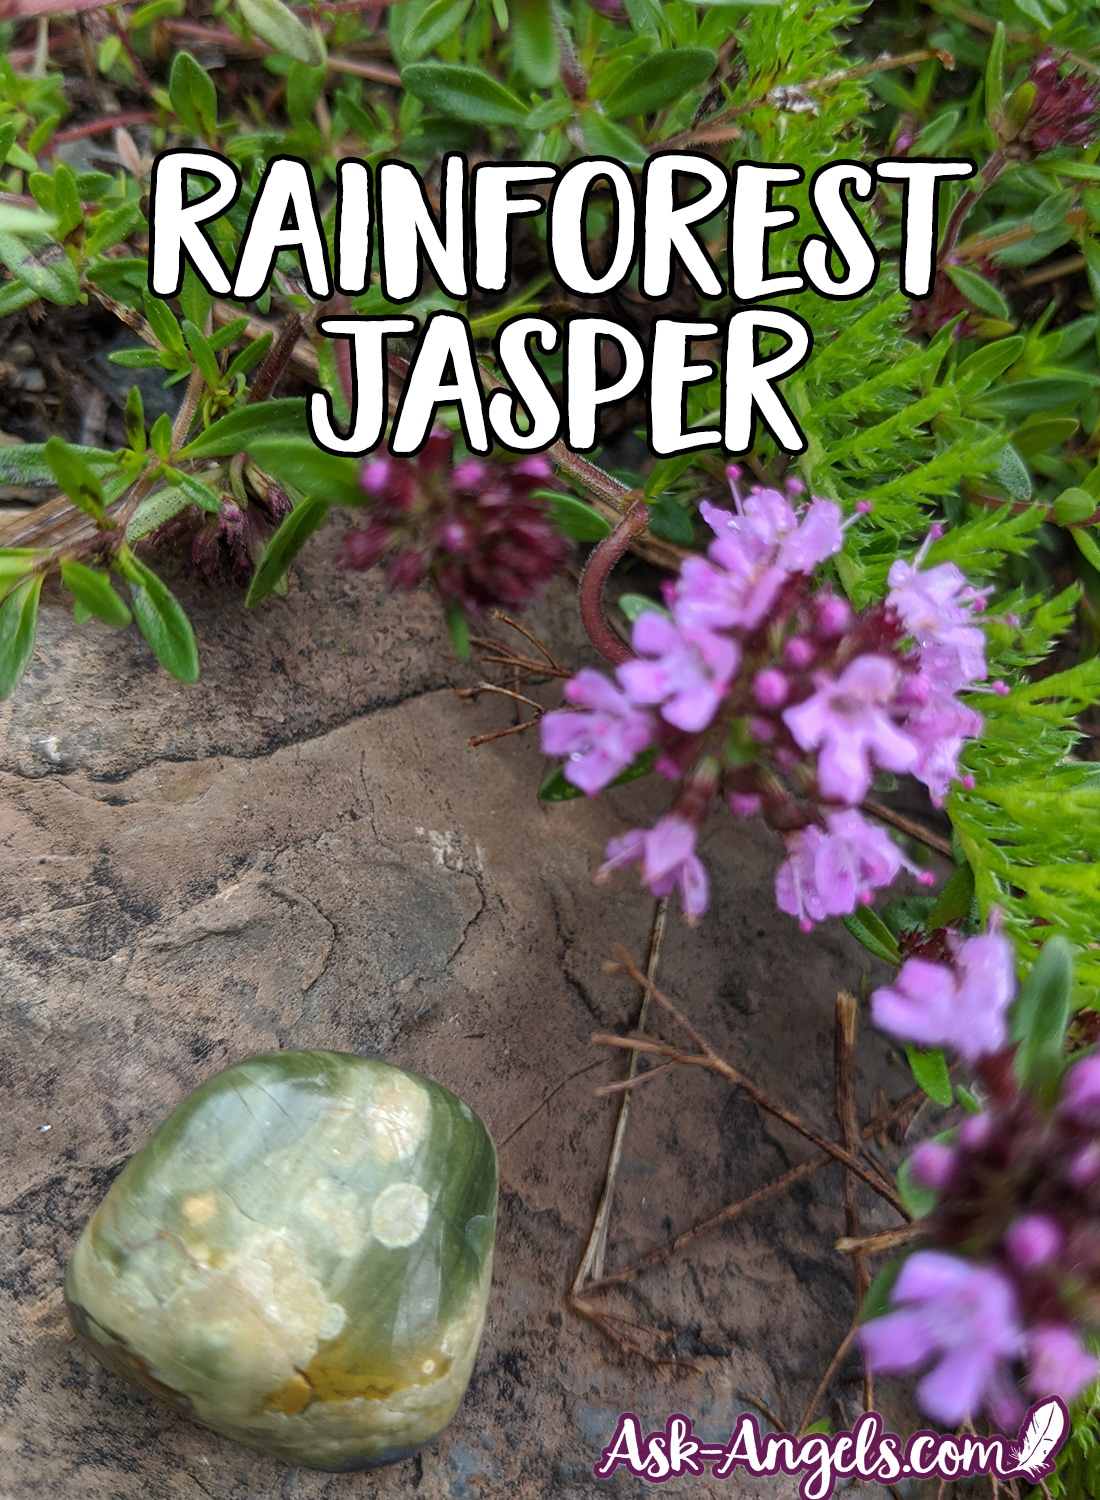 Rainforest Jasper in the Garden